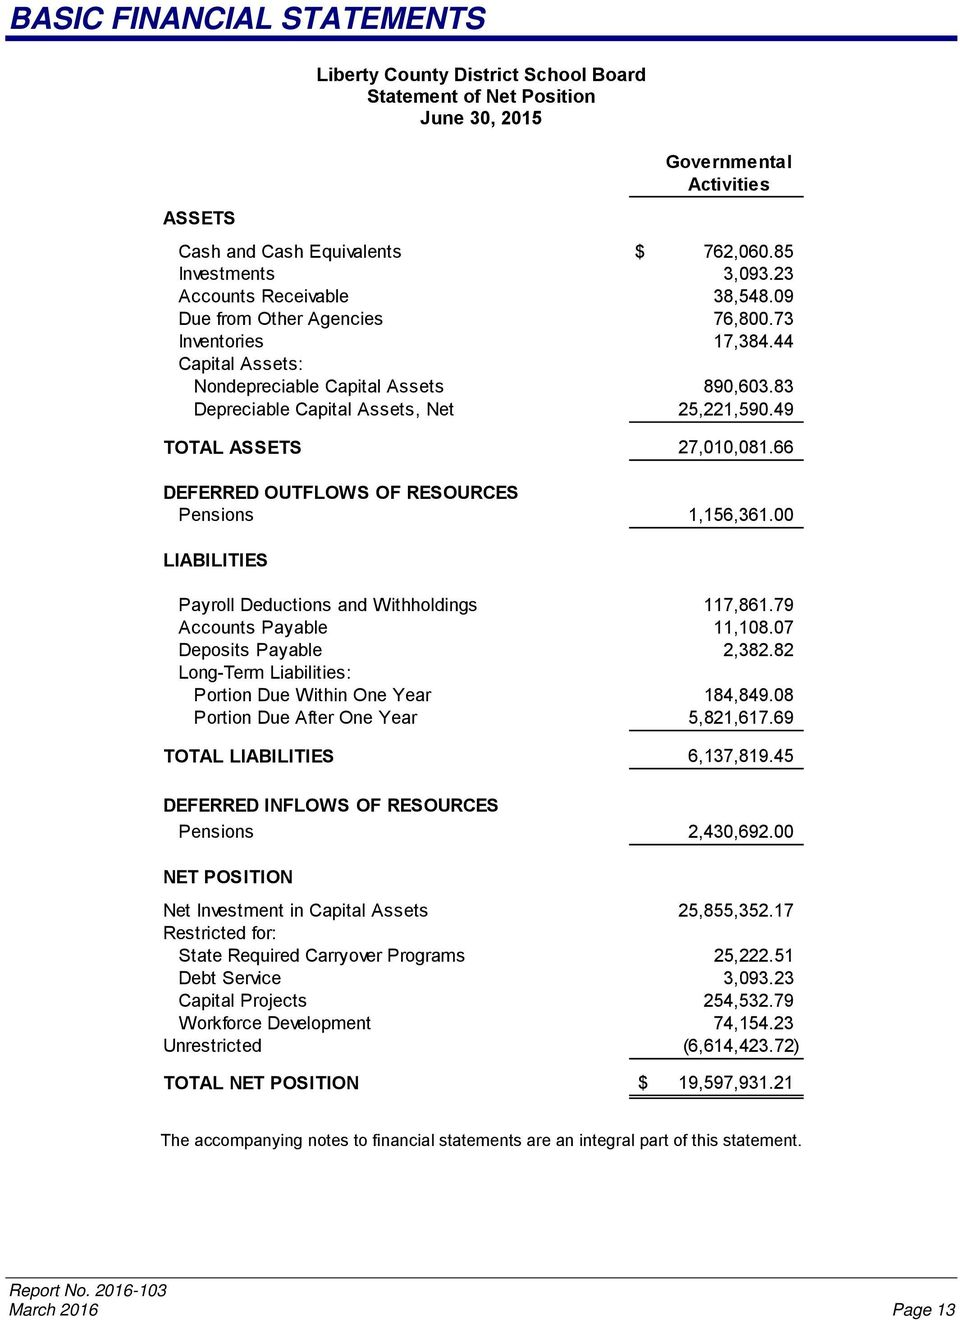 49 TOTAL ASSETS 27,010,081.66 DEFERRED OUTFLOWS OF RESOURCES Pensions 1,156,361.00 LIABILITIES Payroll Deductions and Withholdings 117,861.79 Accounts Payable 11,108.07 Deposits Payable 2,382.